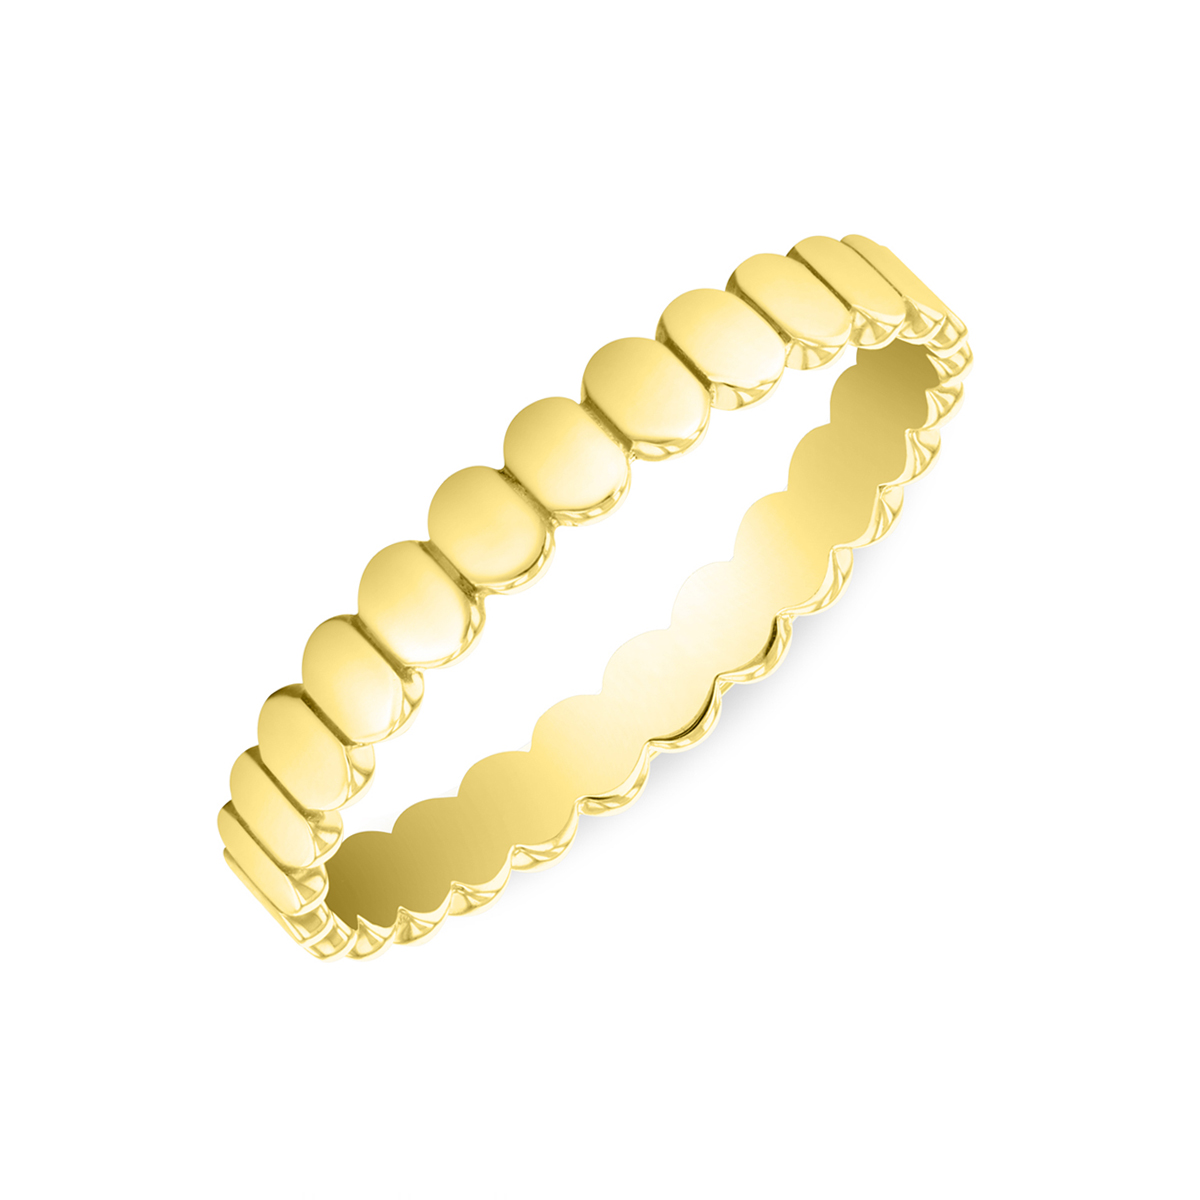 Soleil Collection Oval Disc Ring   9K Yellow Gold